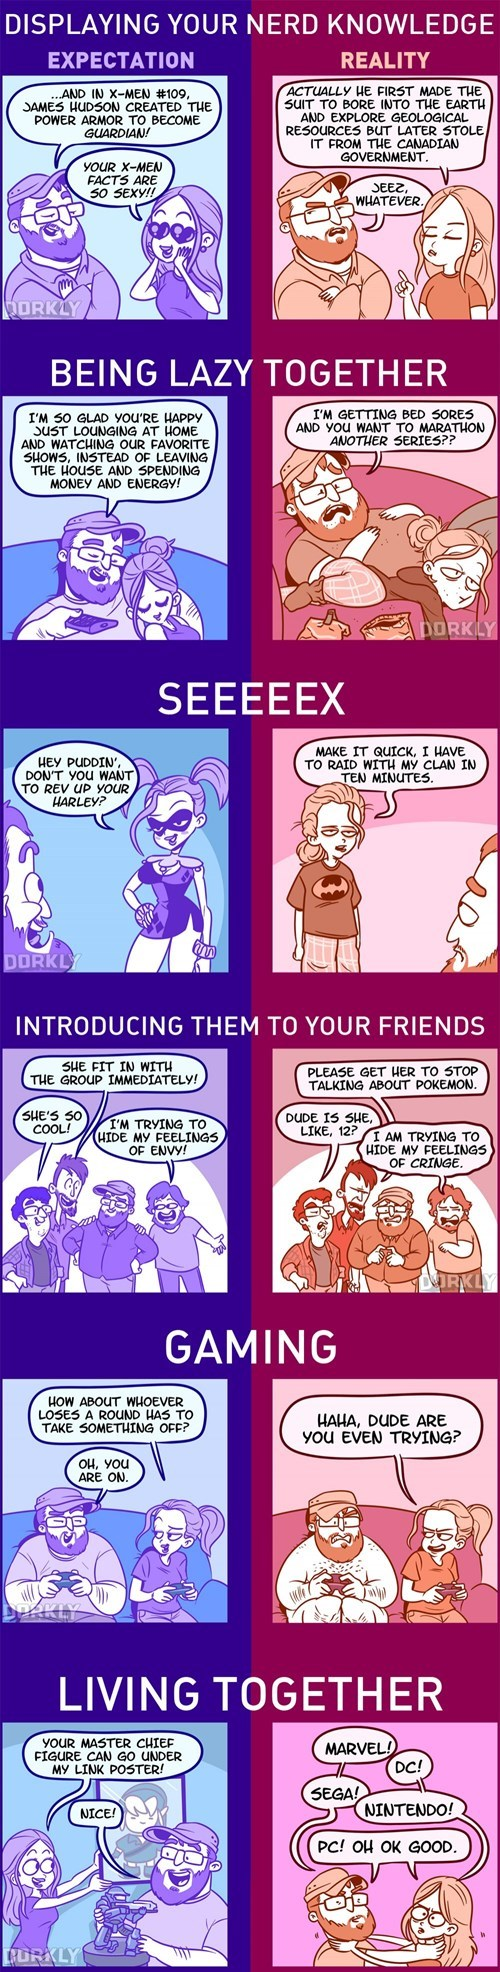 geek memes nerd dating expectations v reality